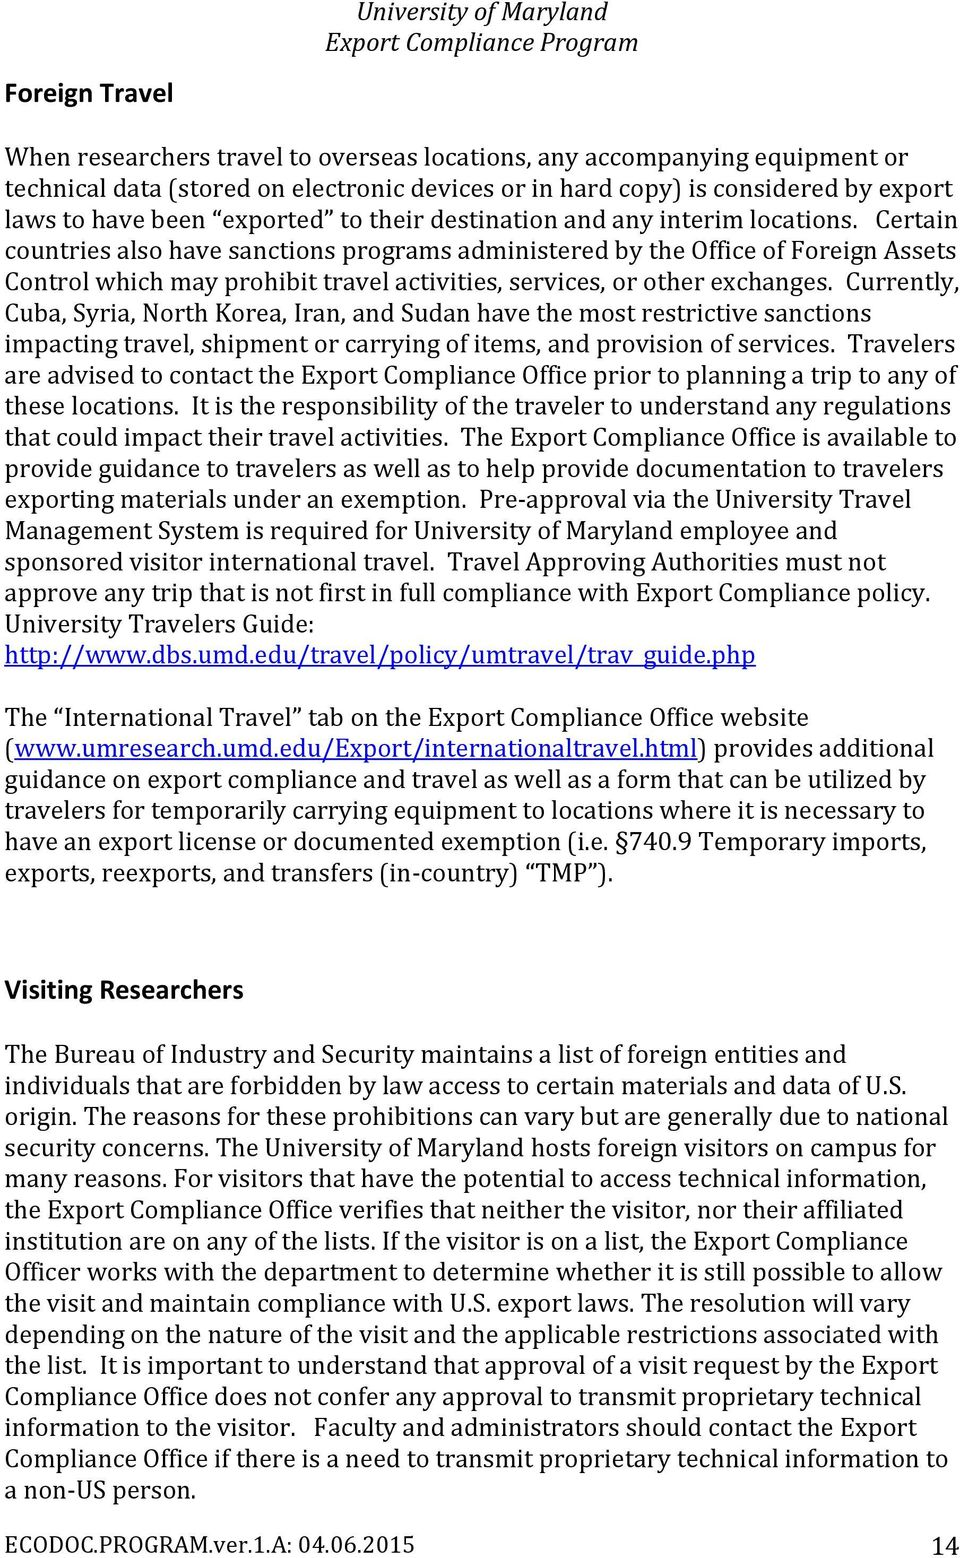 Certain countries also have sanctions programs administered by the Office of Foreign Assets Control which may prohibit travel activities, services, or other exchanges.